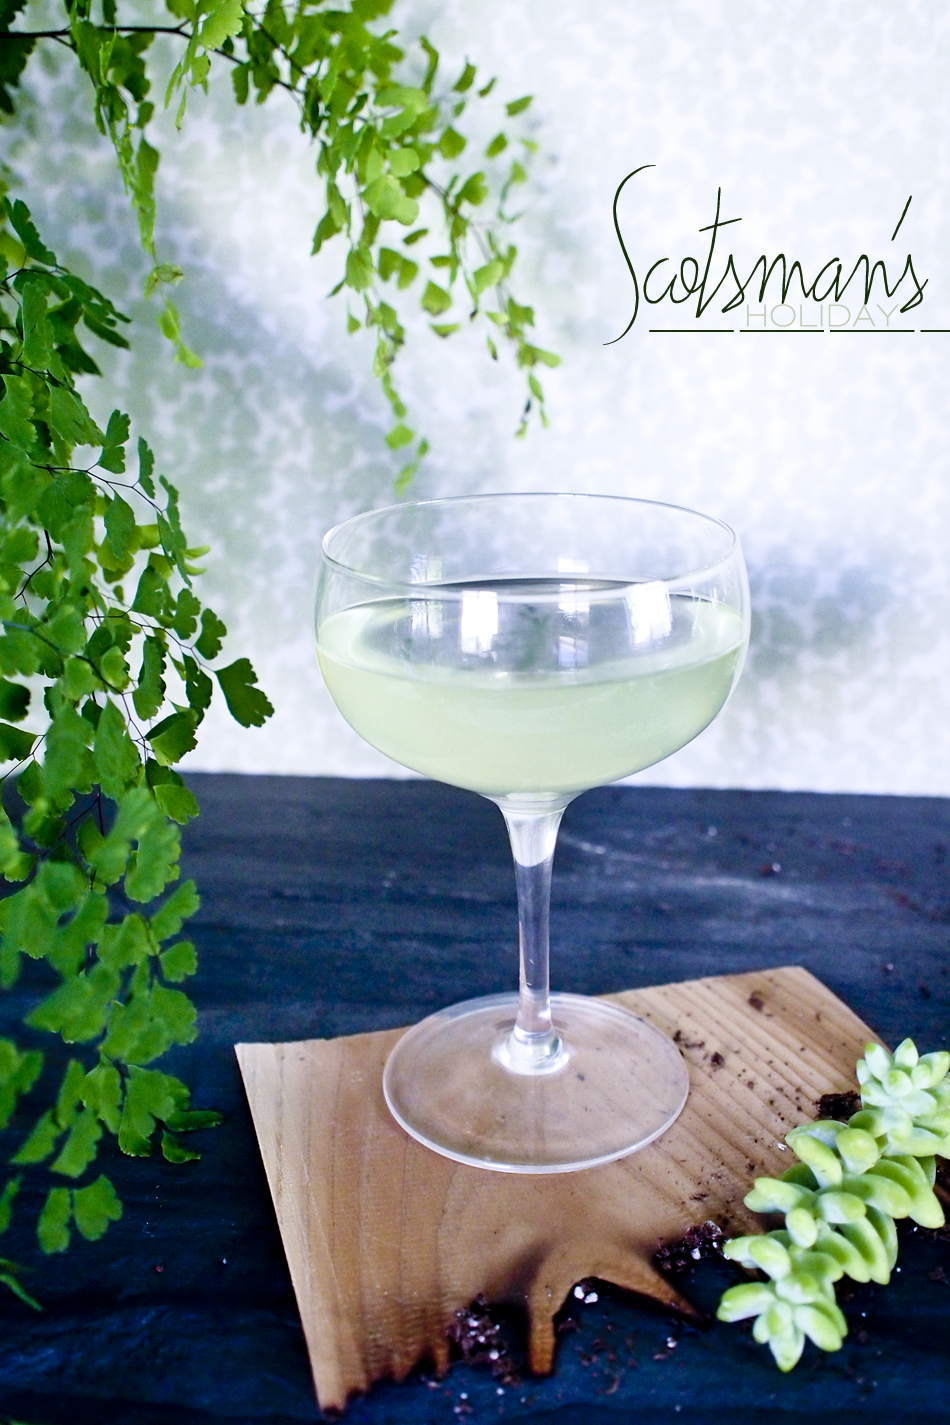 Dine X Design | Scotsman's Holiday Cocktail Recipe